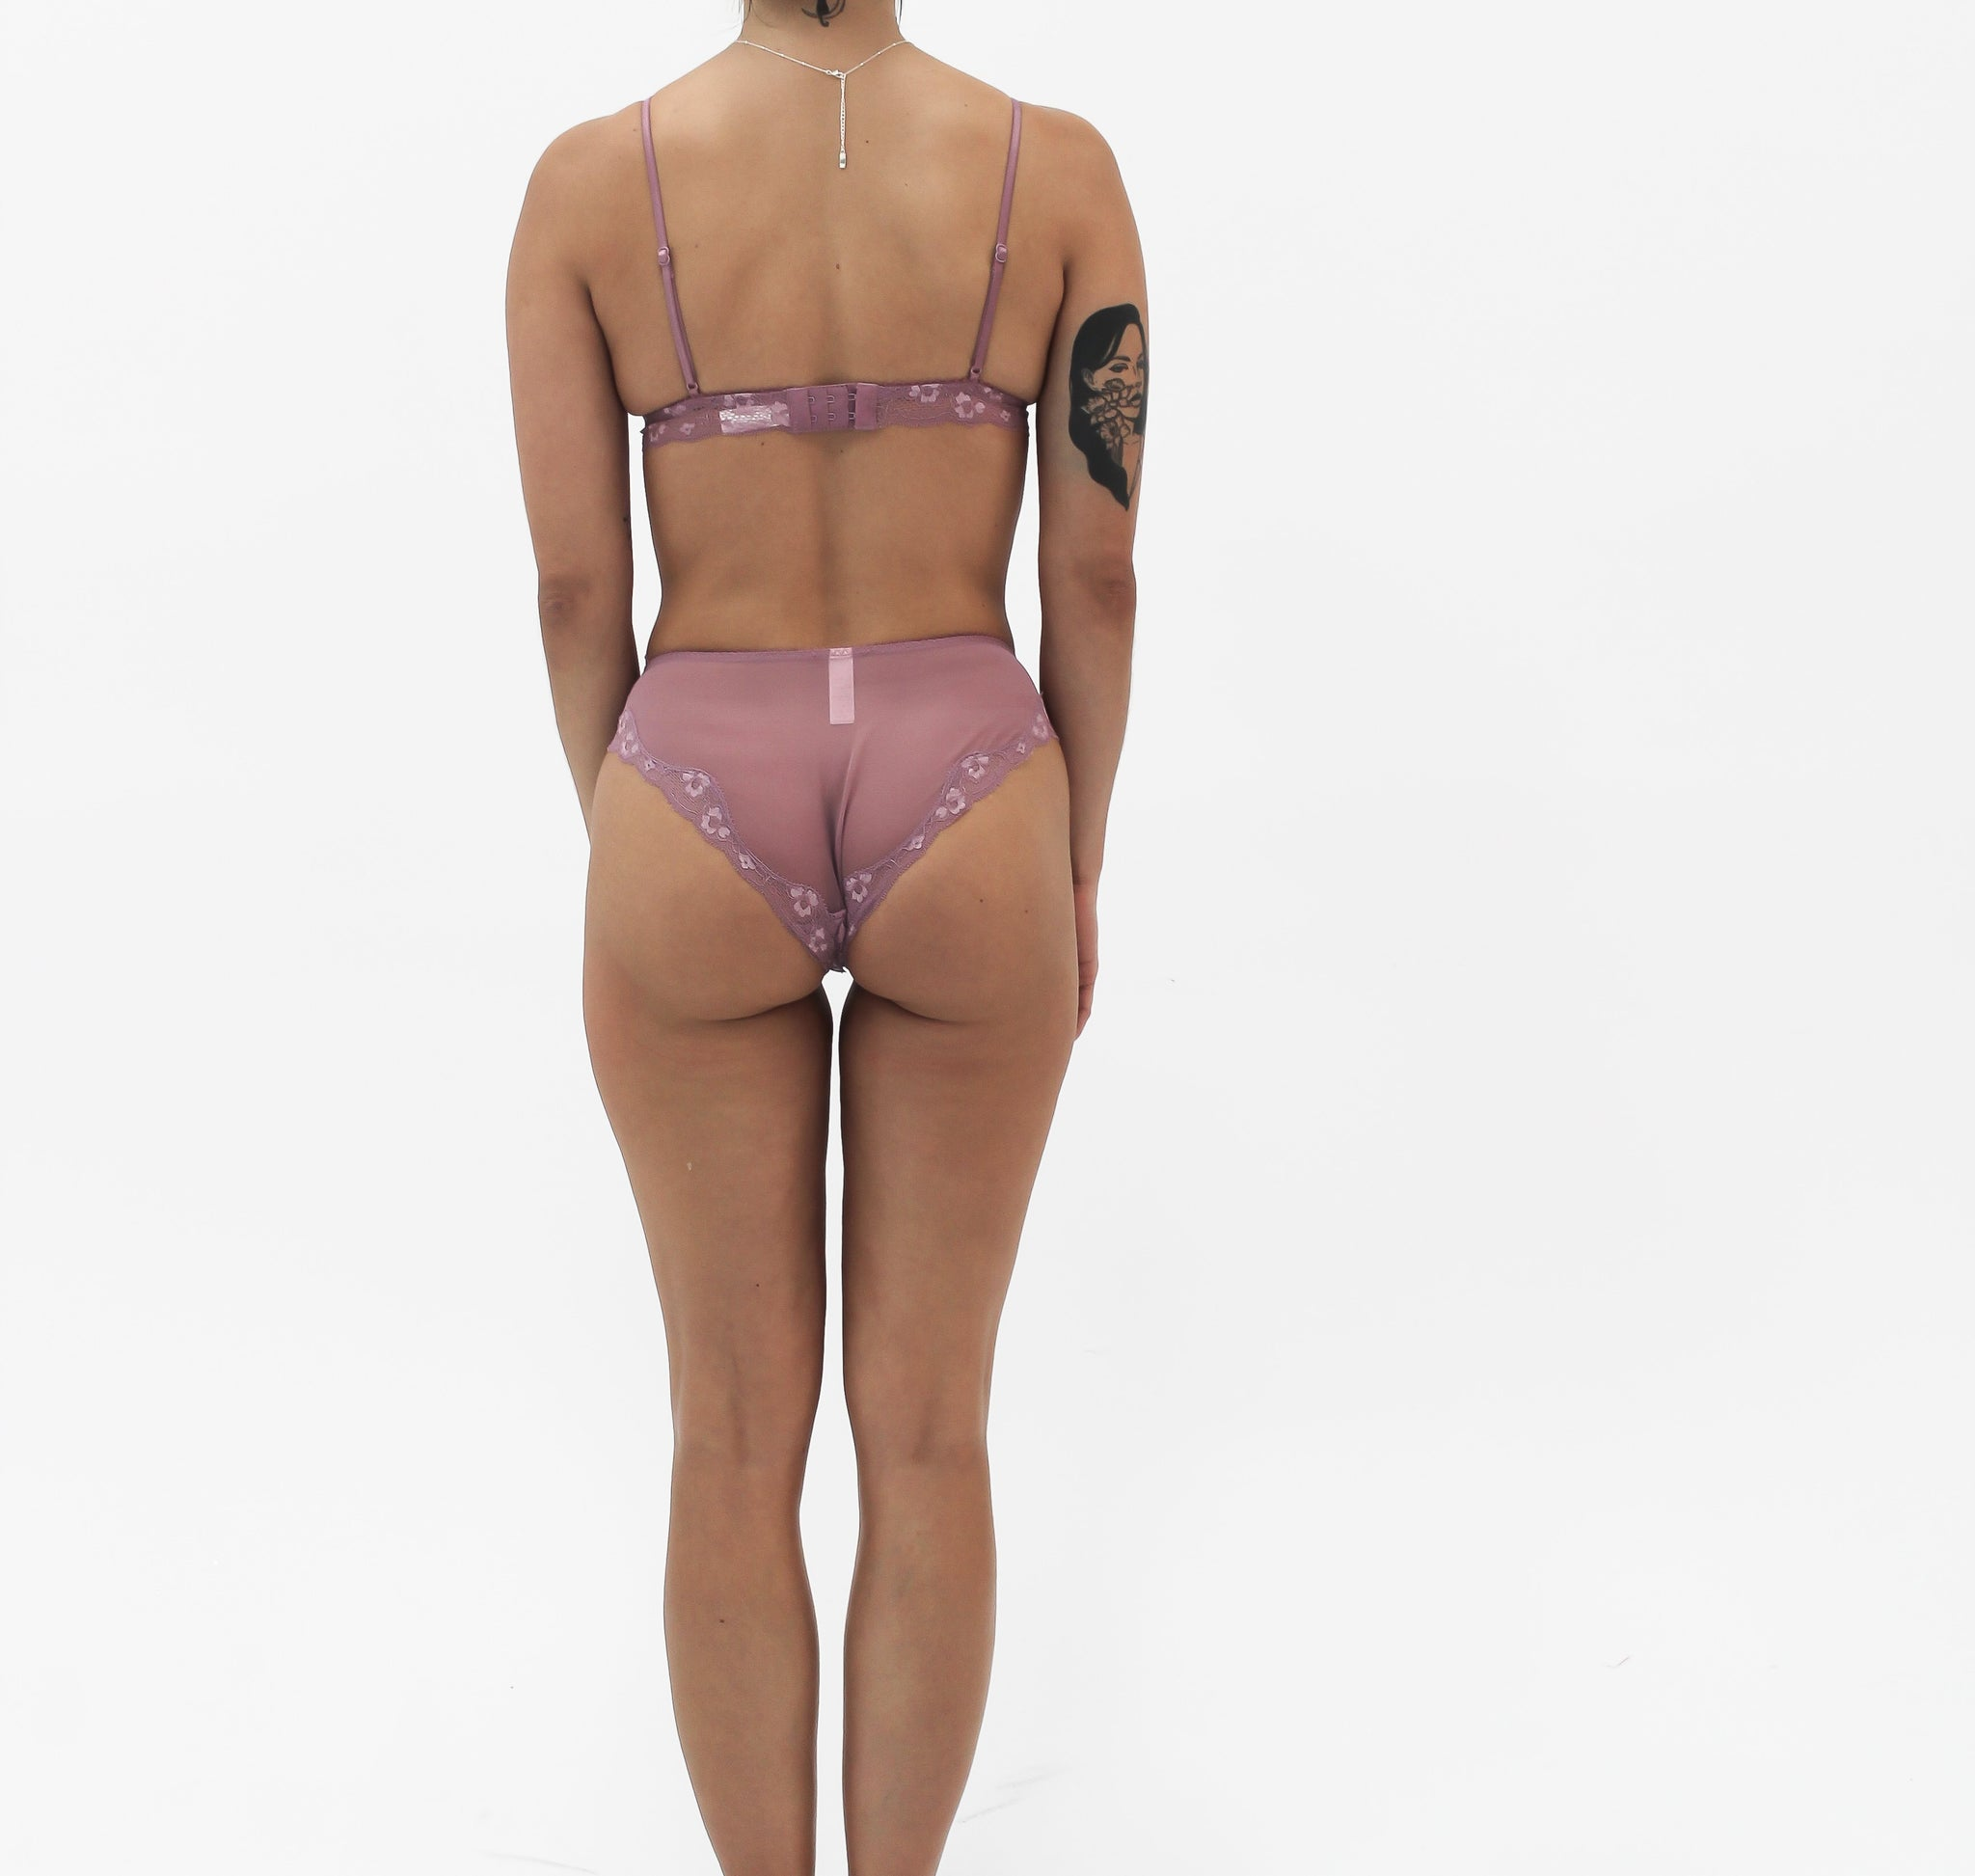 Lingerie July Rose Bottom